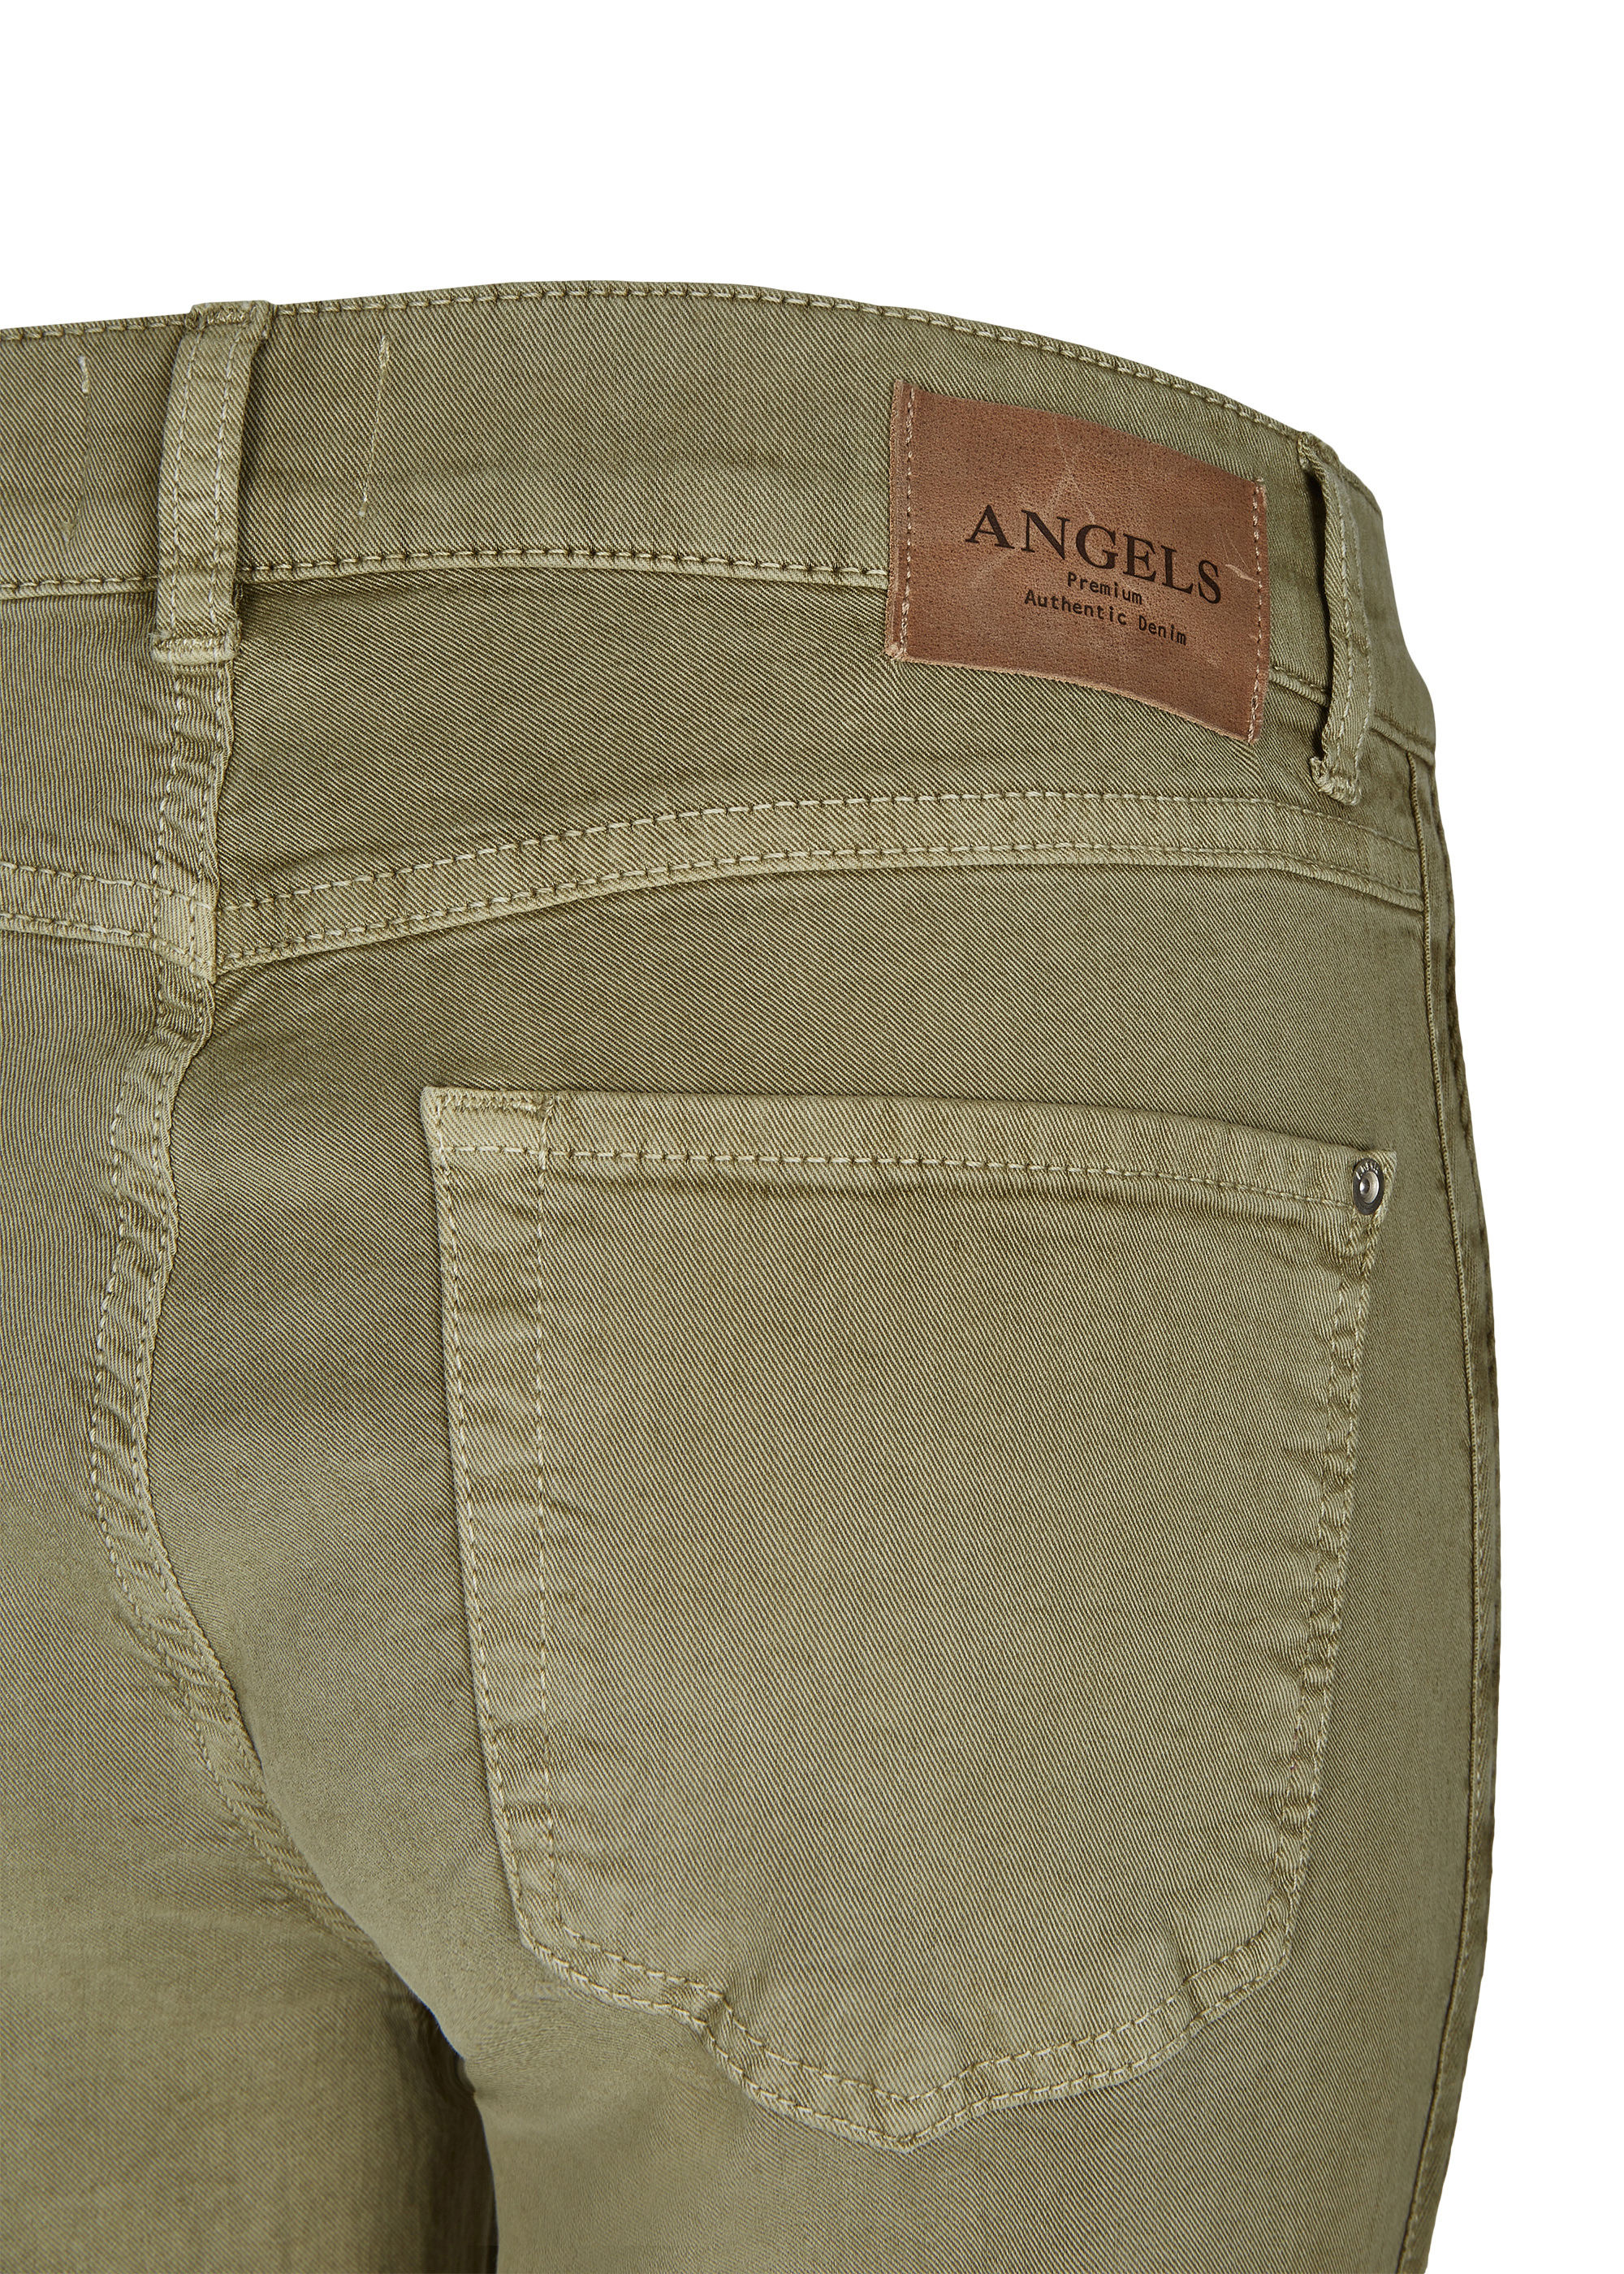 Angels Jeans Skinny Galon in khaki CutTVHgY